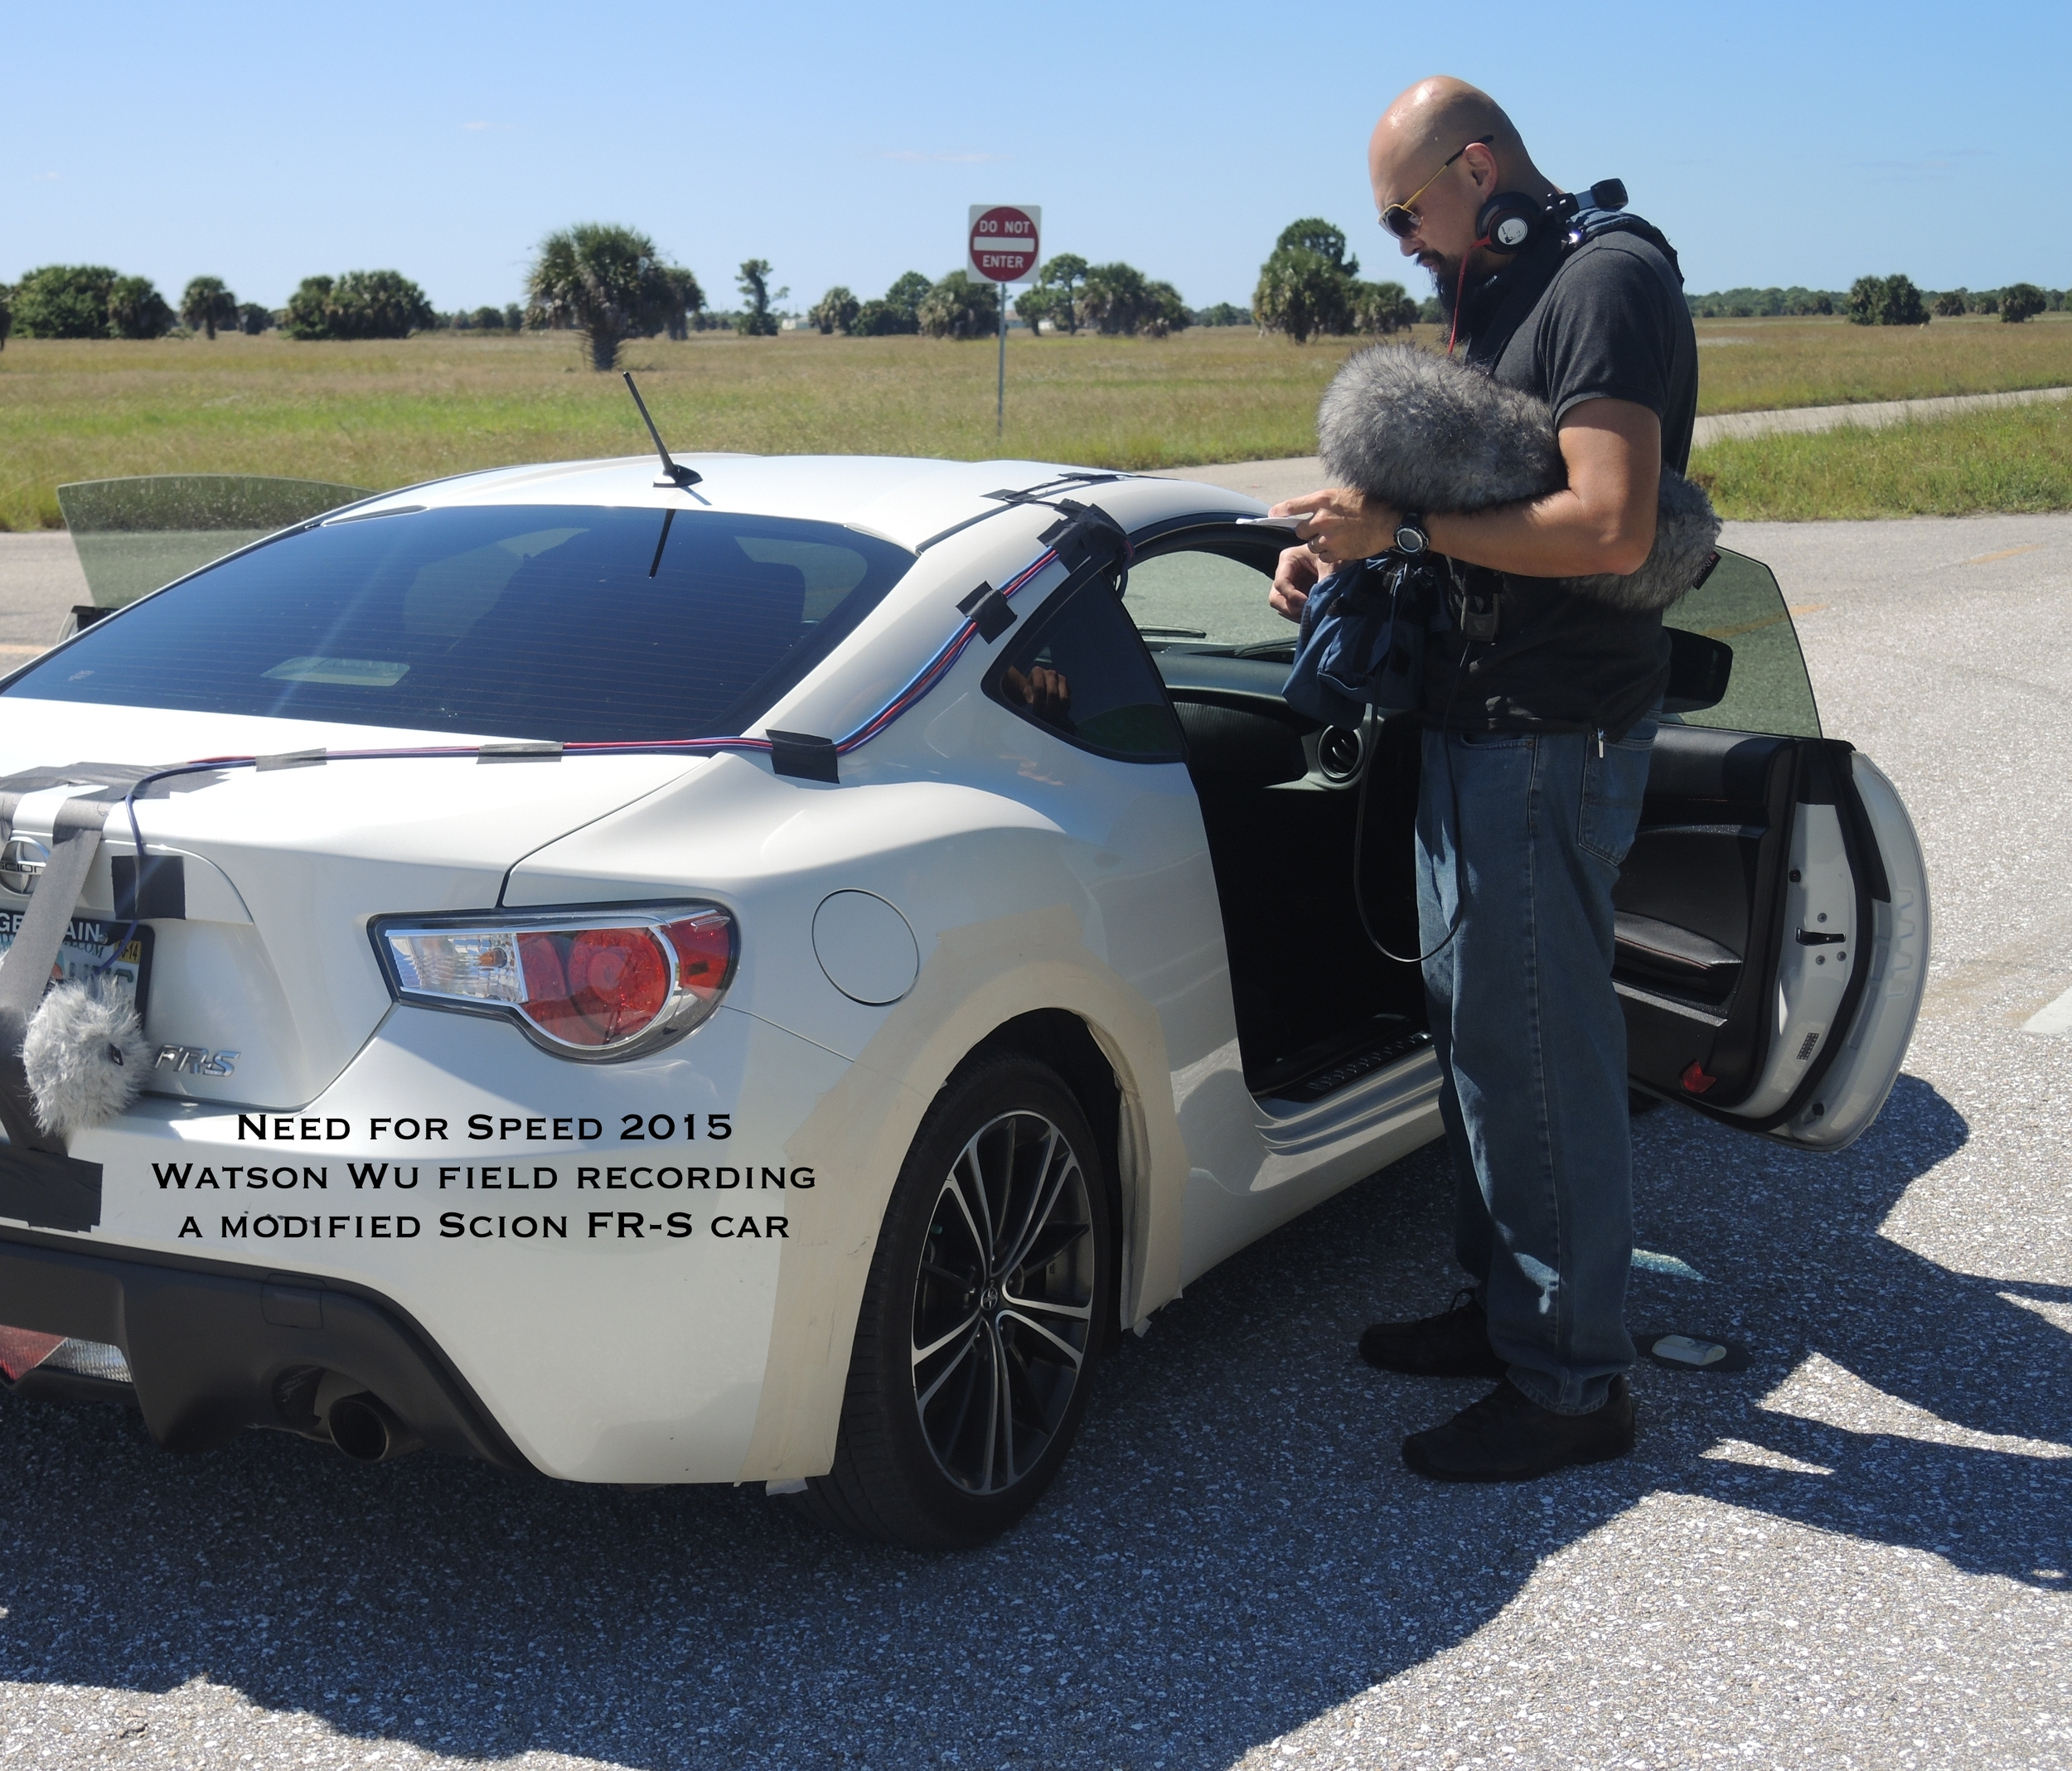 Watson going over the check list of field recording this modified Scion FR-S sports car.